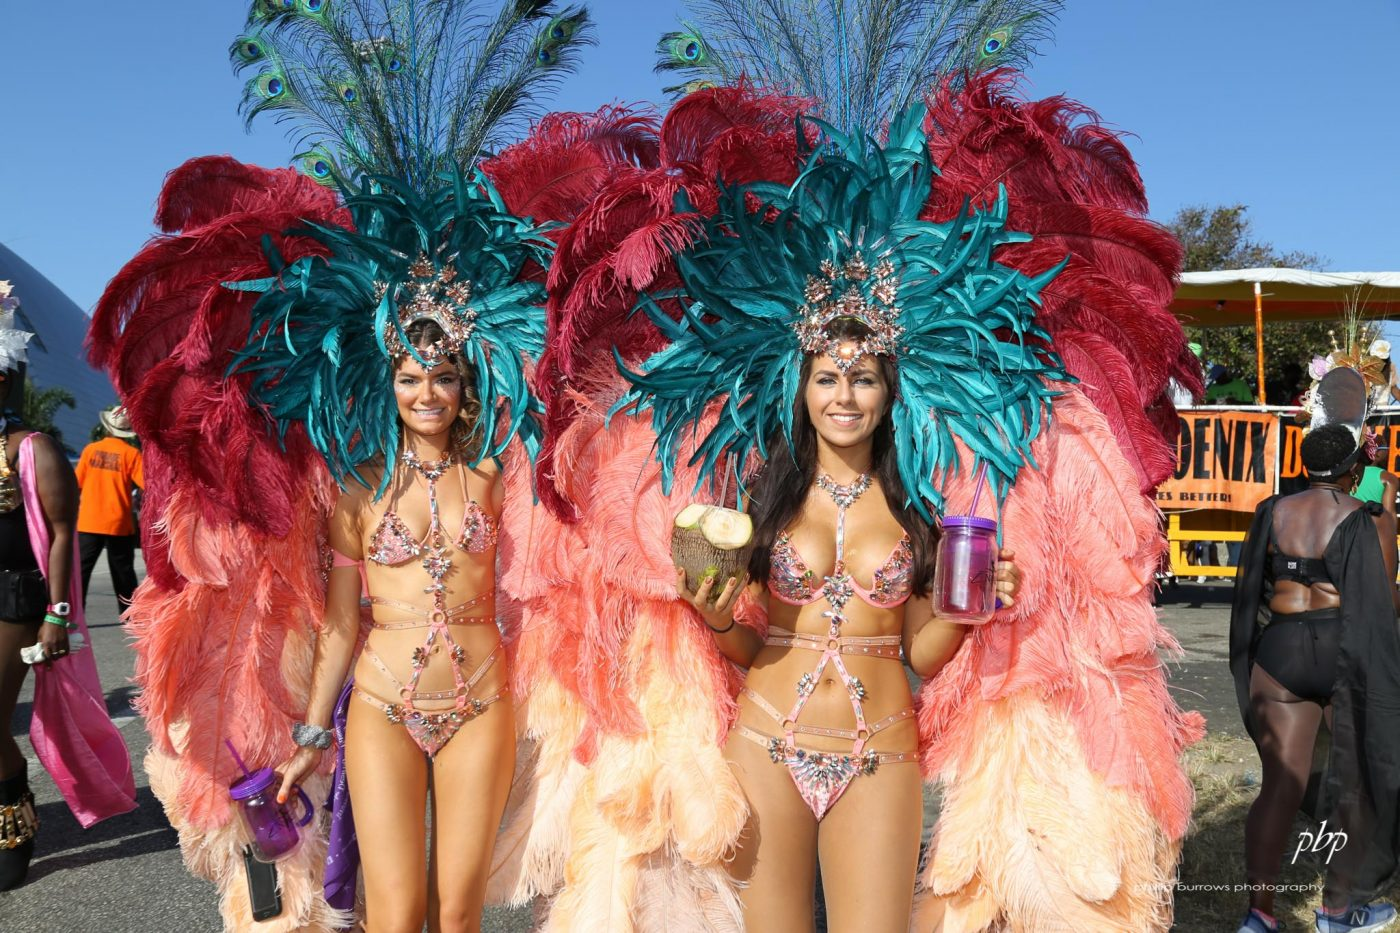 Pity, that Trinidad and tobago carnival consider